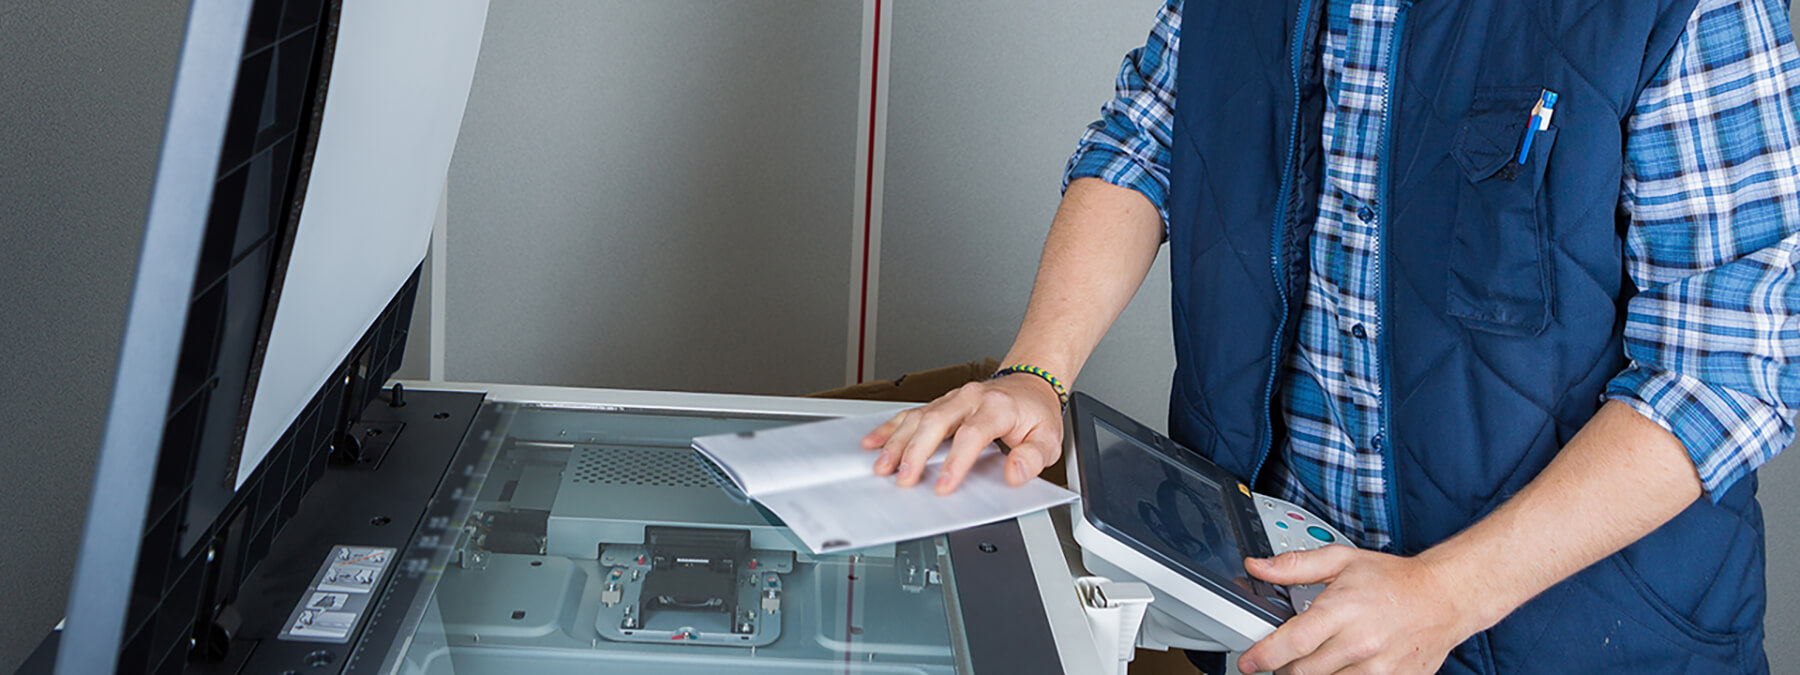 Certified technician troubleshooting a printer